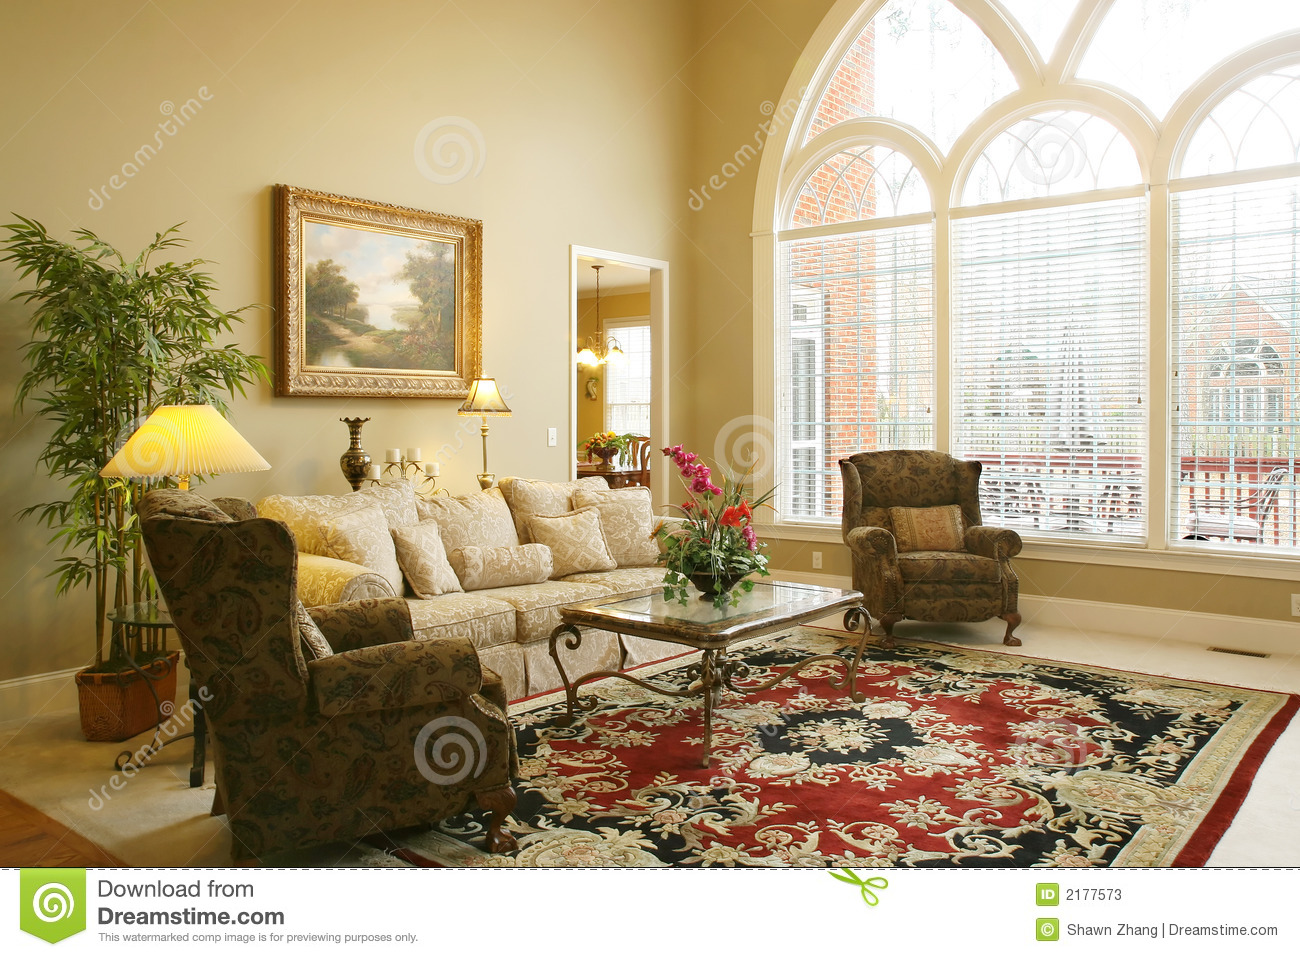 Living Room Beautiful Family Rooms beautiful family rooms home ideas designs room stock photos image 2177573